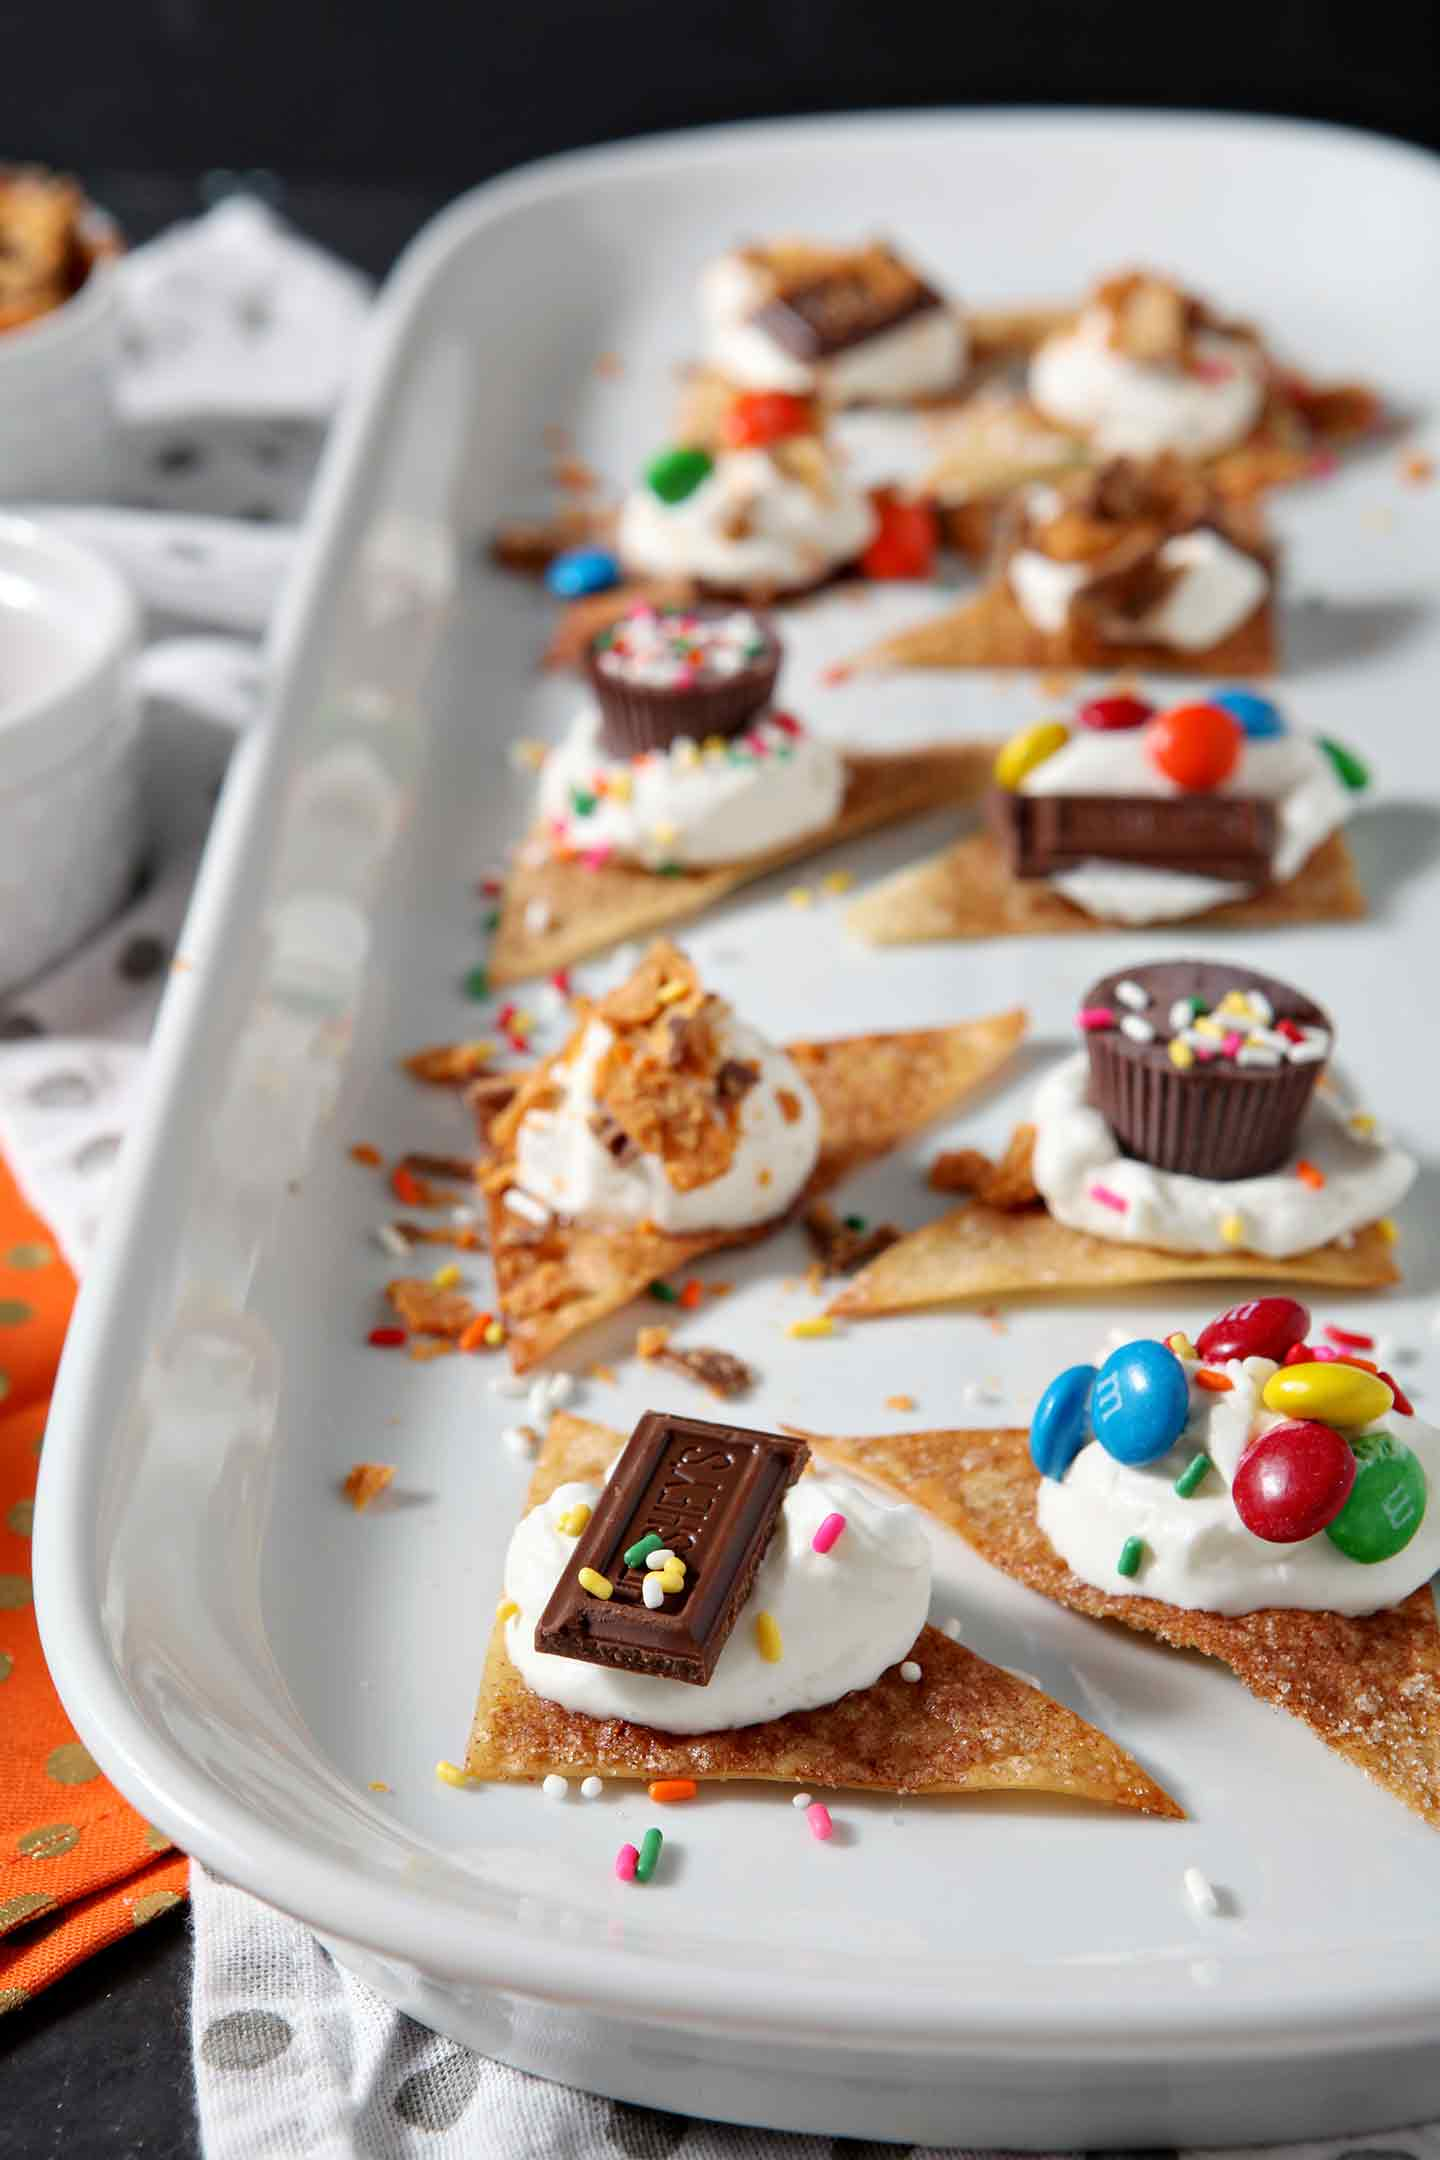 Individual Halloween Dessert Nachos line a long platter, surrounded by additional candy and whipped cream